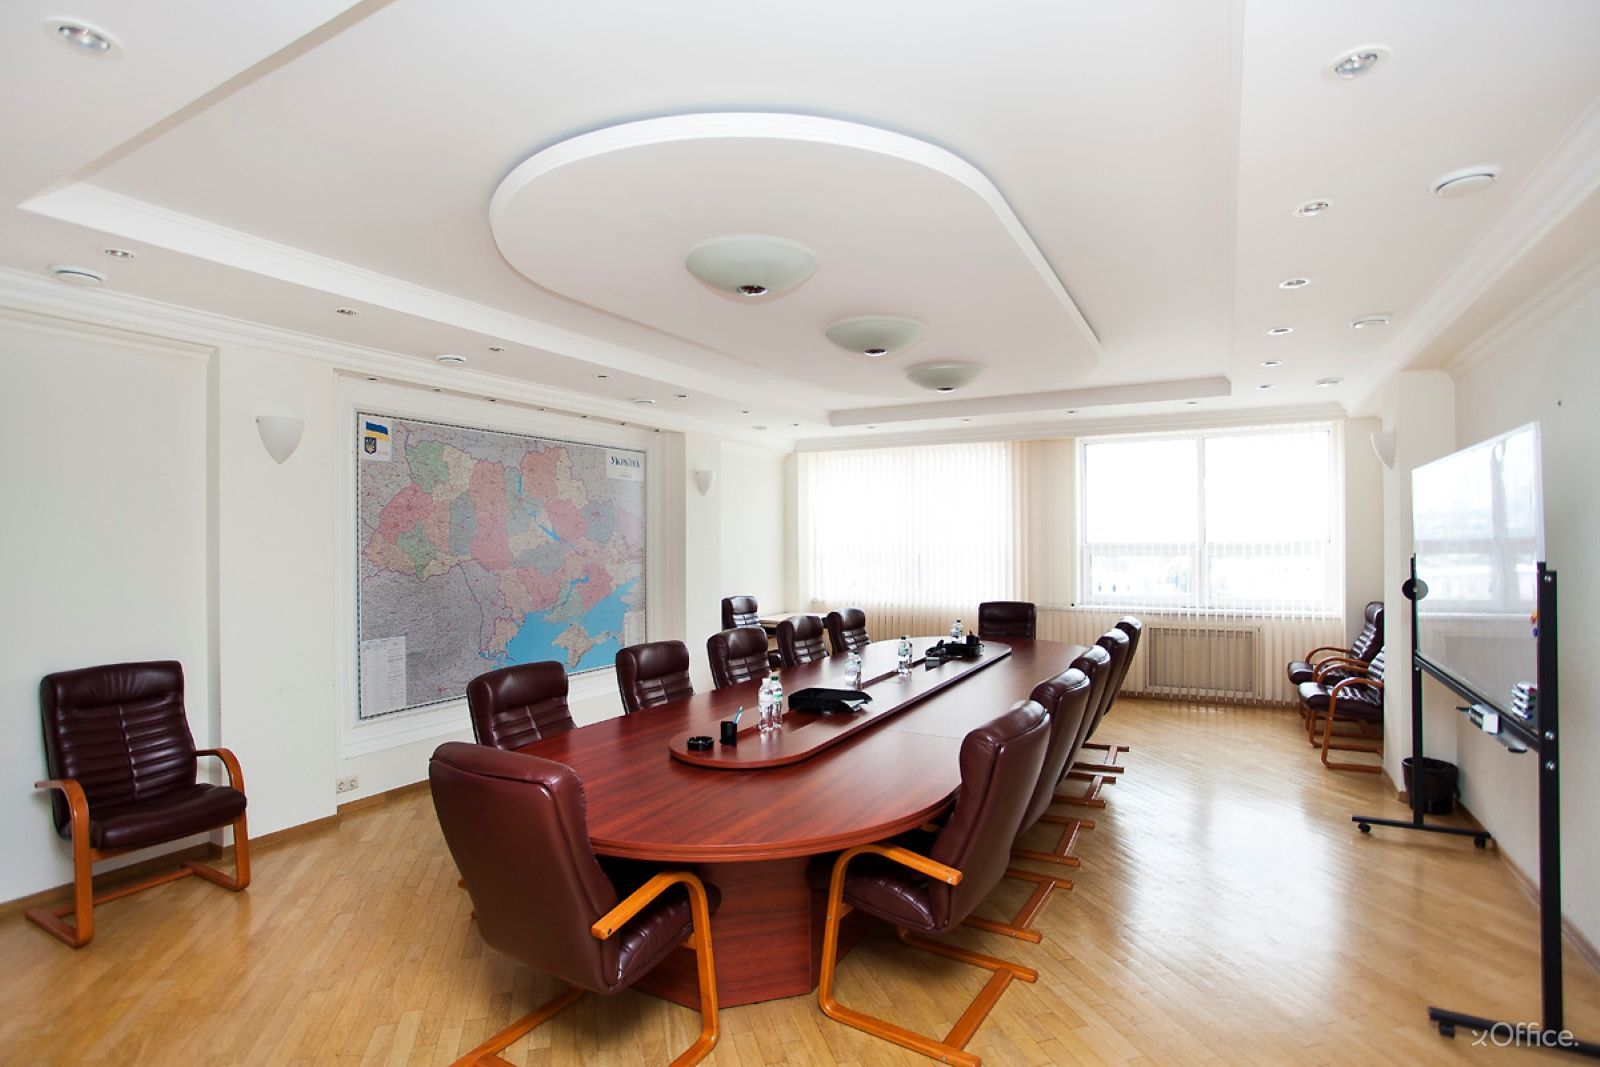 bc_pochayna_center_bandery_6_xoffice_11